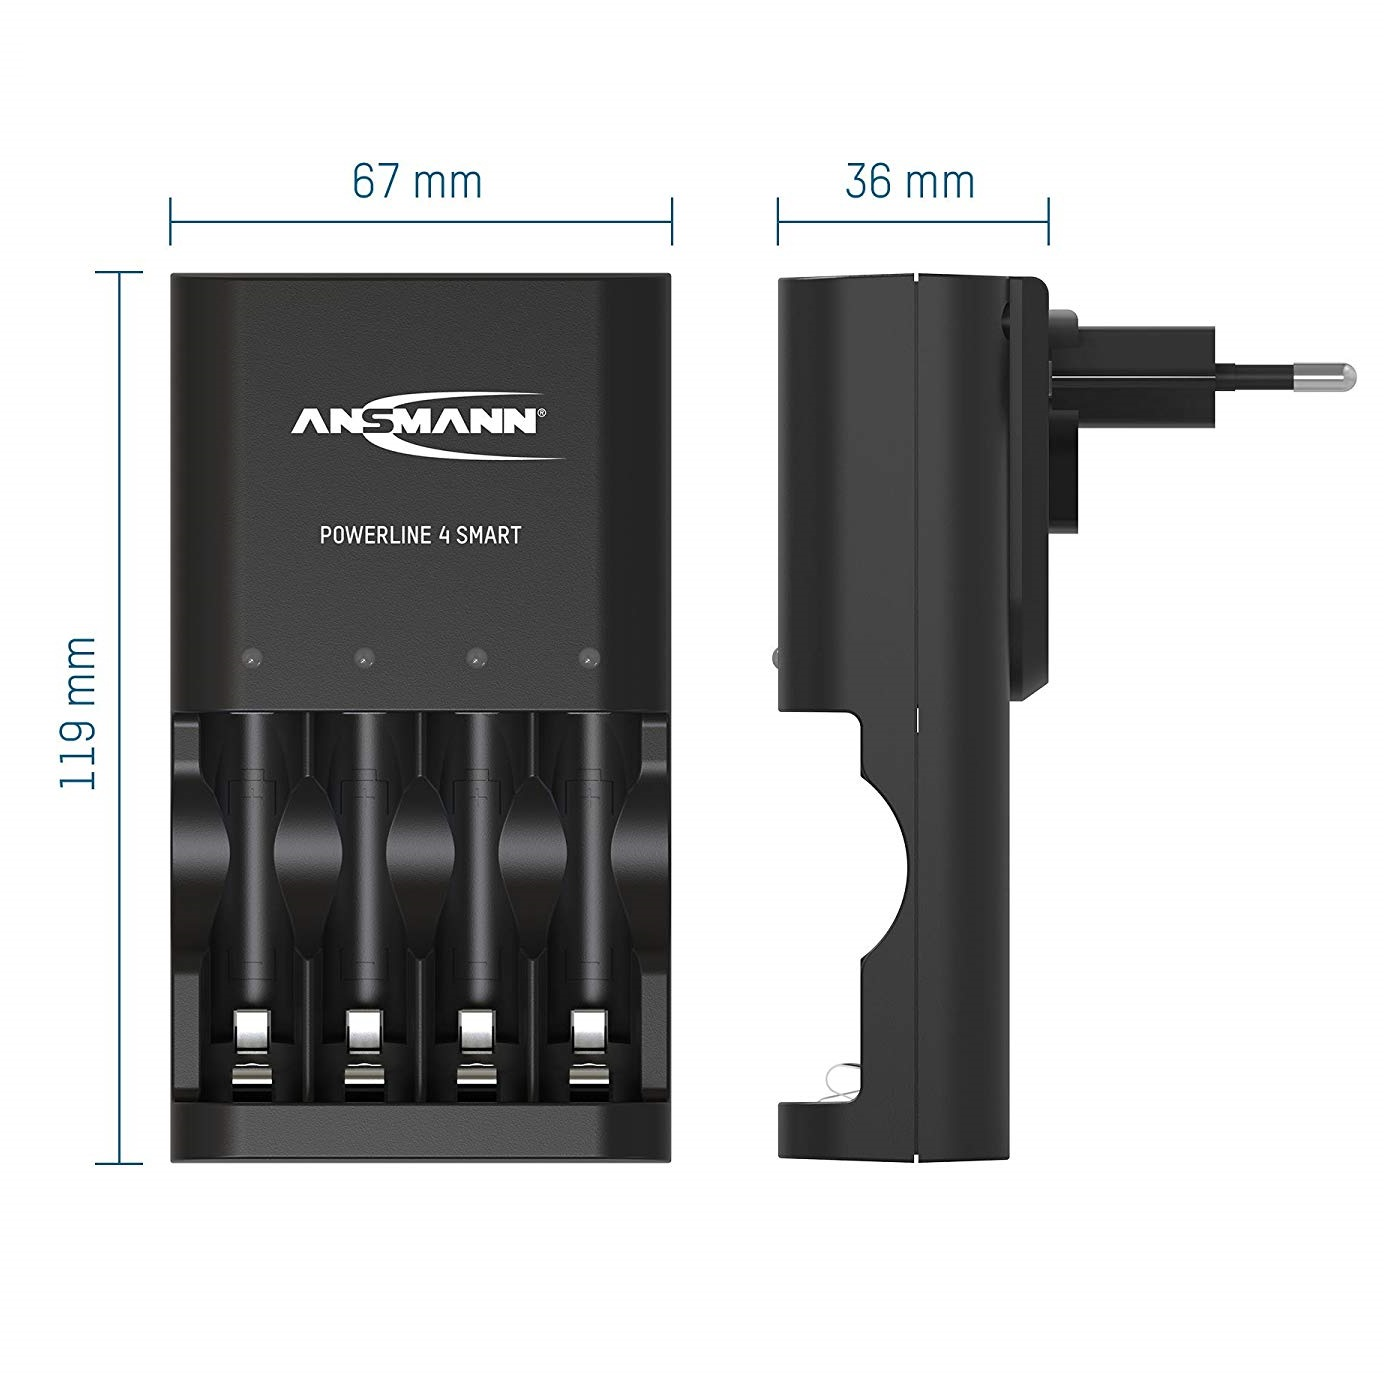 Bộ sạc Pin ANSMANN POWERLINE 4 Smart